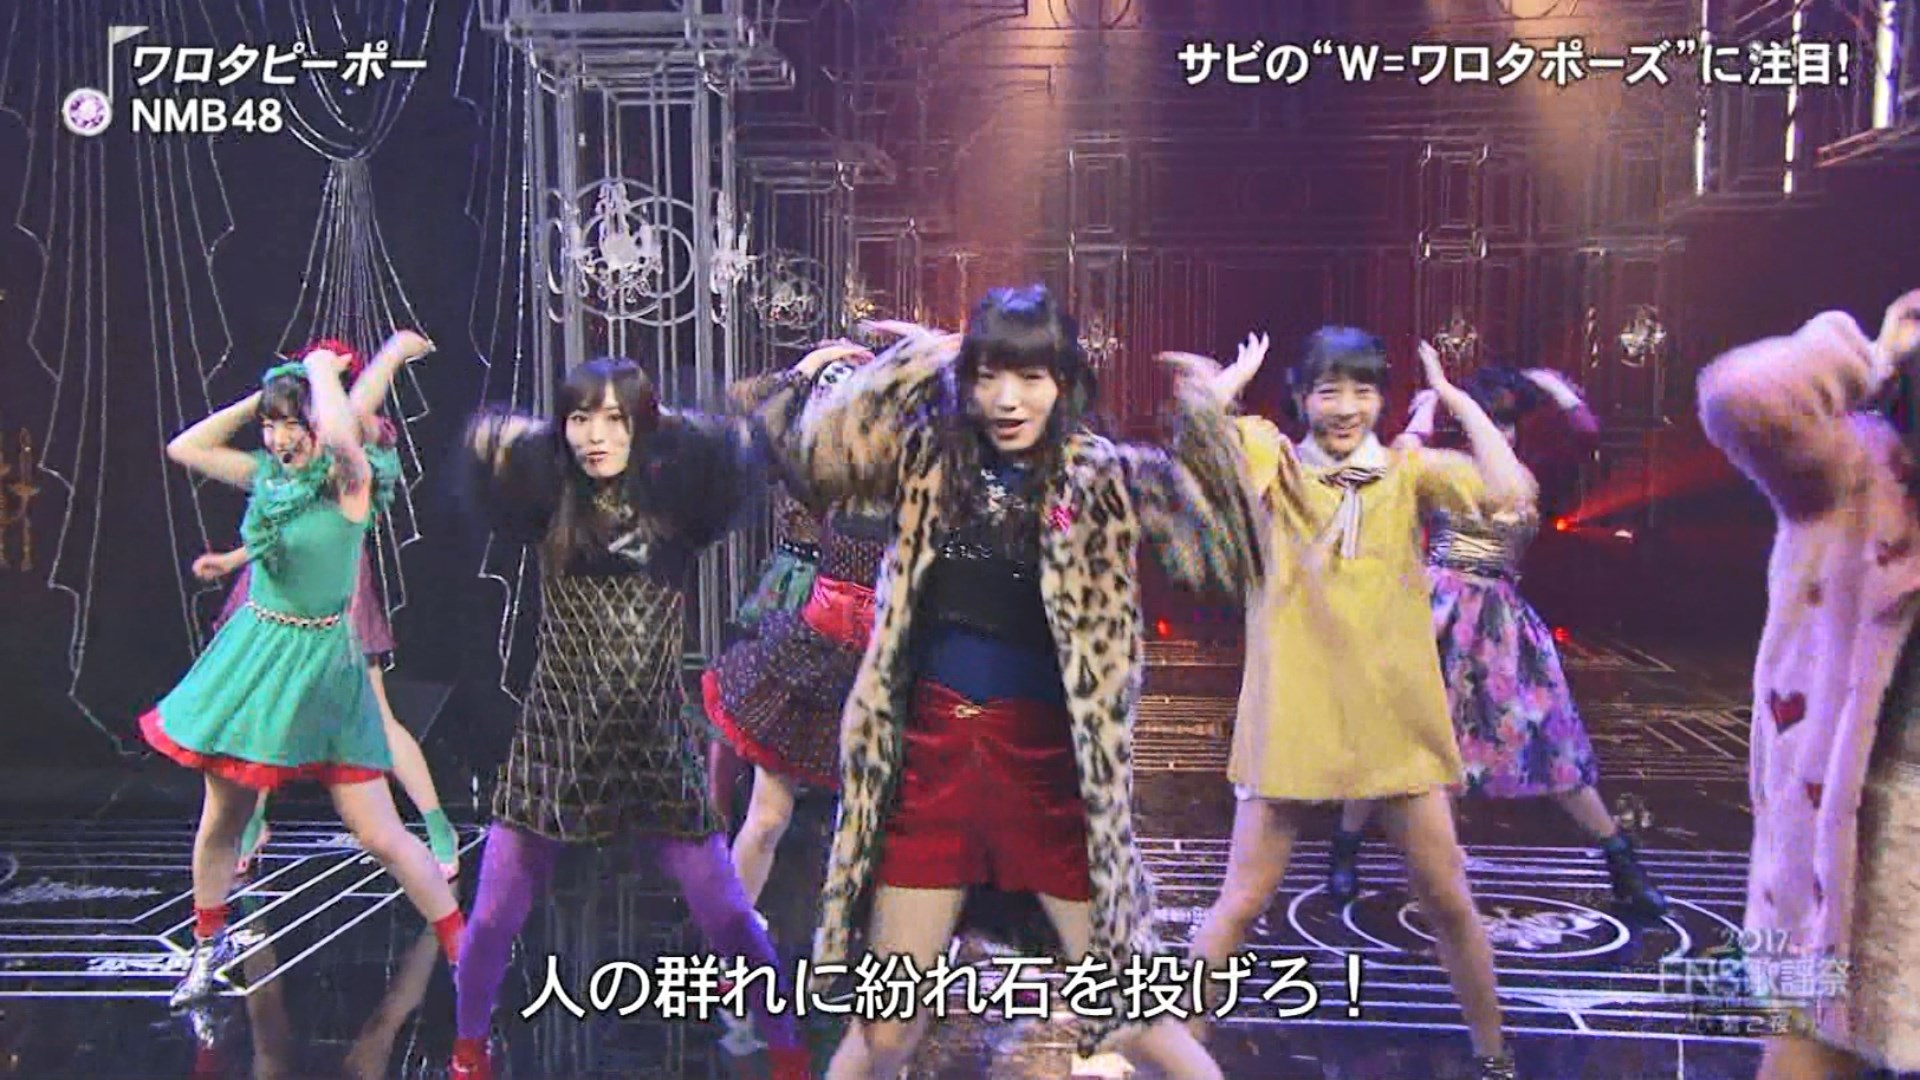 2017FNS歌謡祭第2夜・NMB48ワロタピーポーキャプ-066